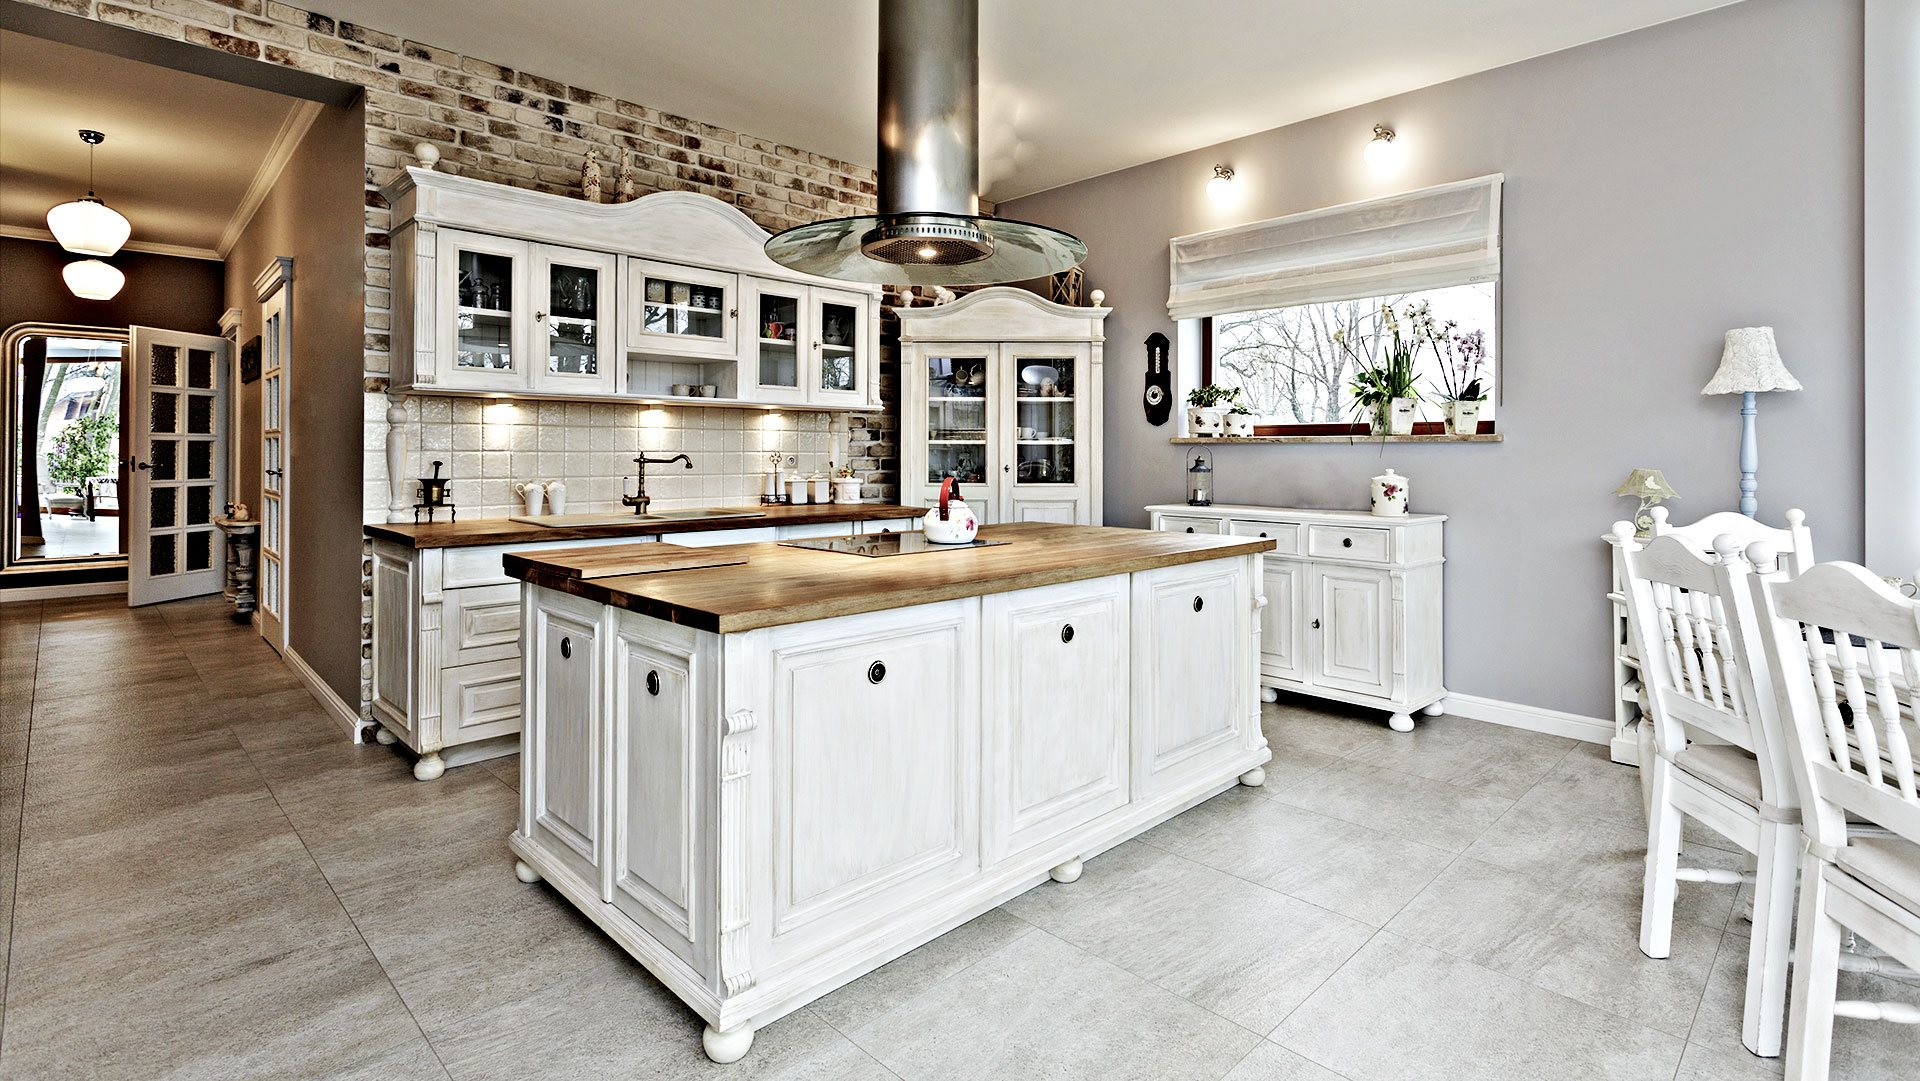 Integrity Construction & Remodeling Remodeled Kitchen 2